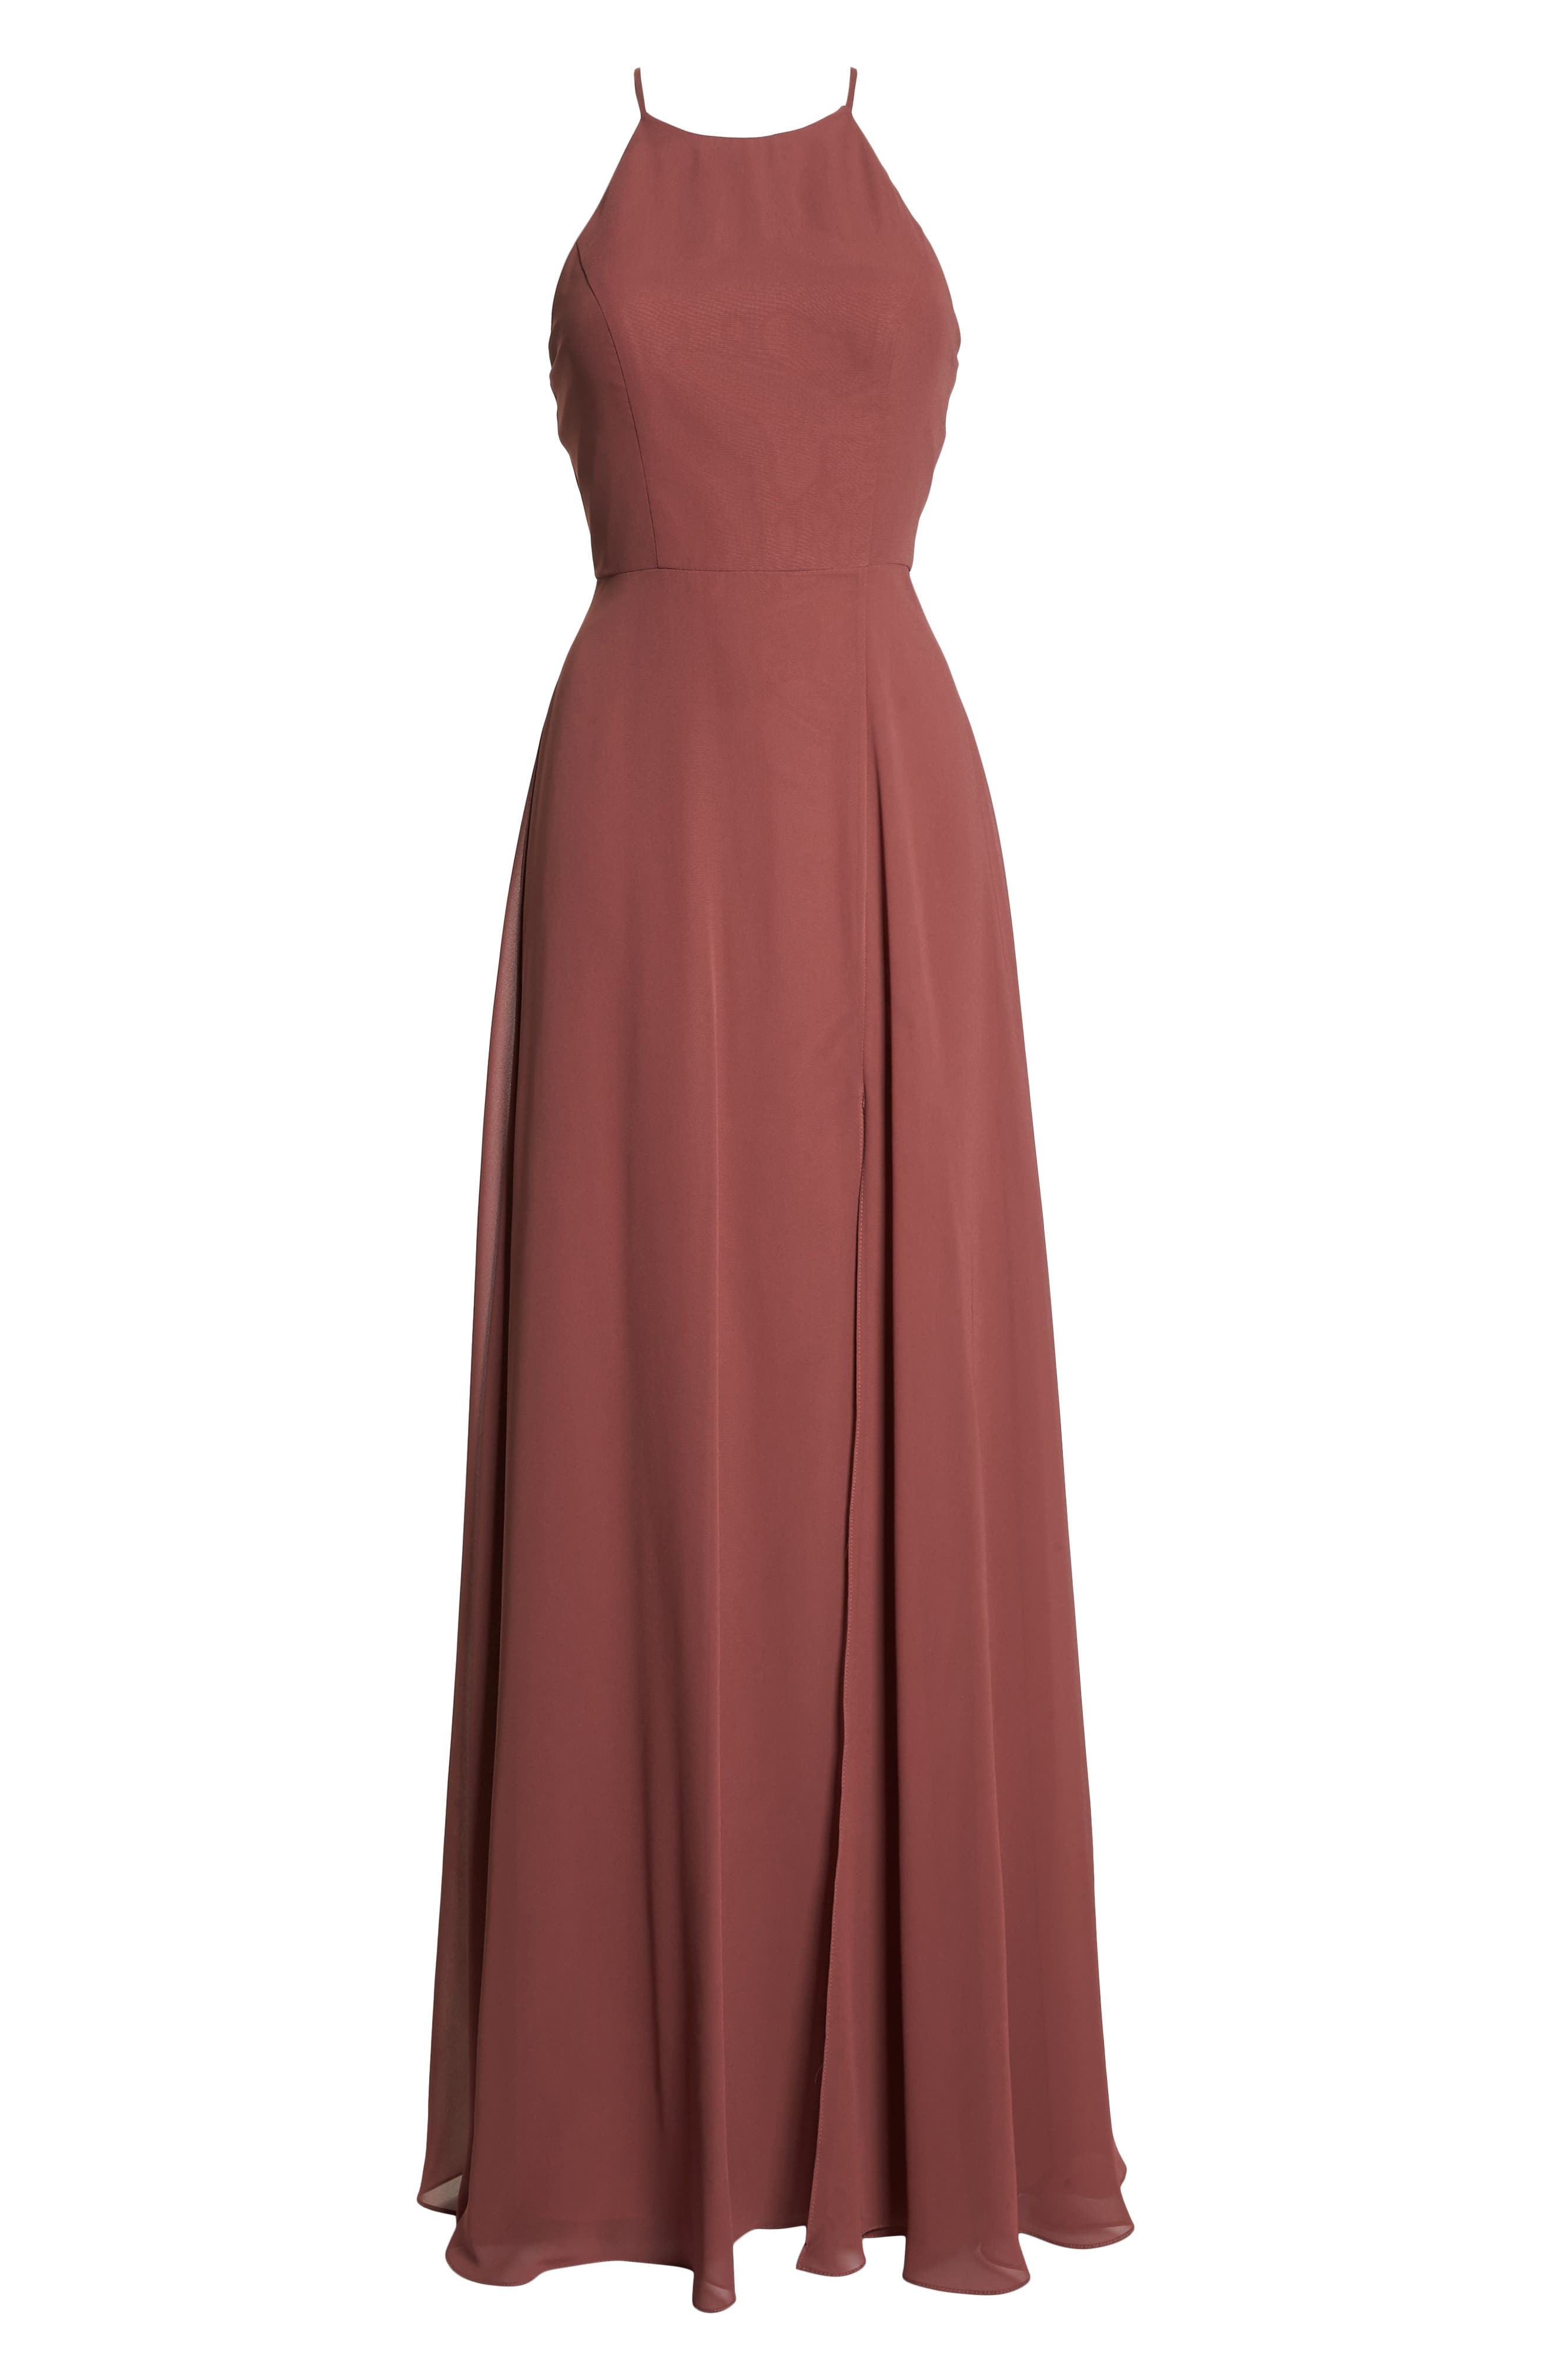 Kayla A-Line Halter Gown,                             Alternate thumbnail 7, color,                             CINNAMON ROSE